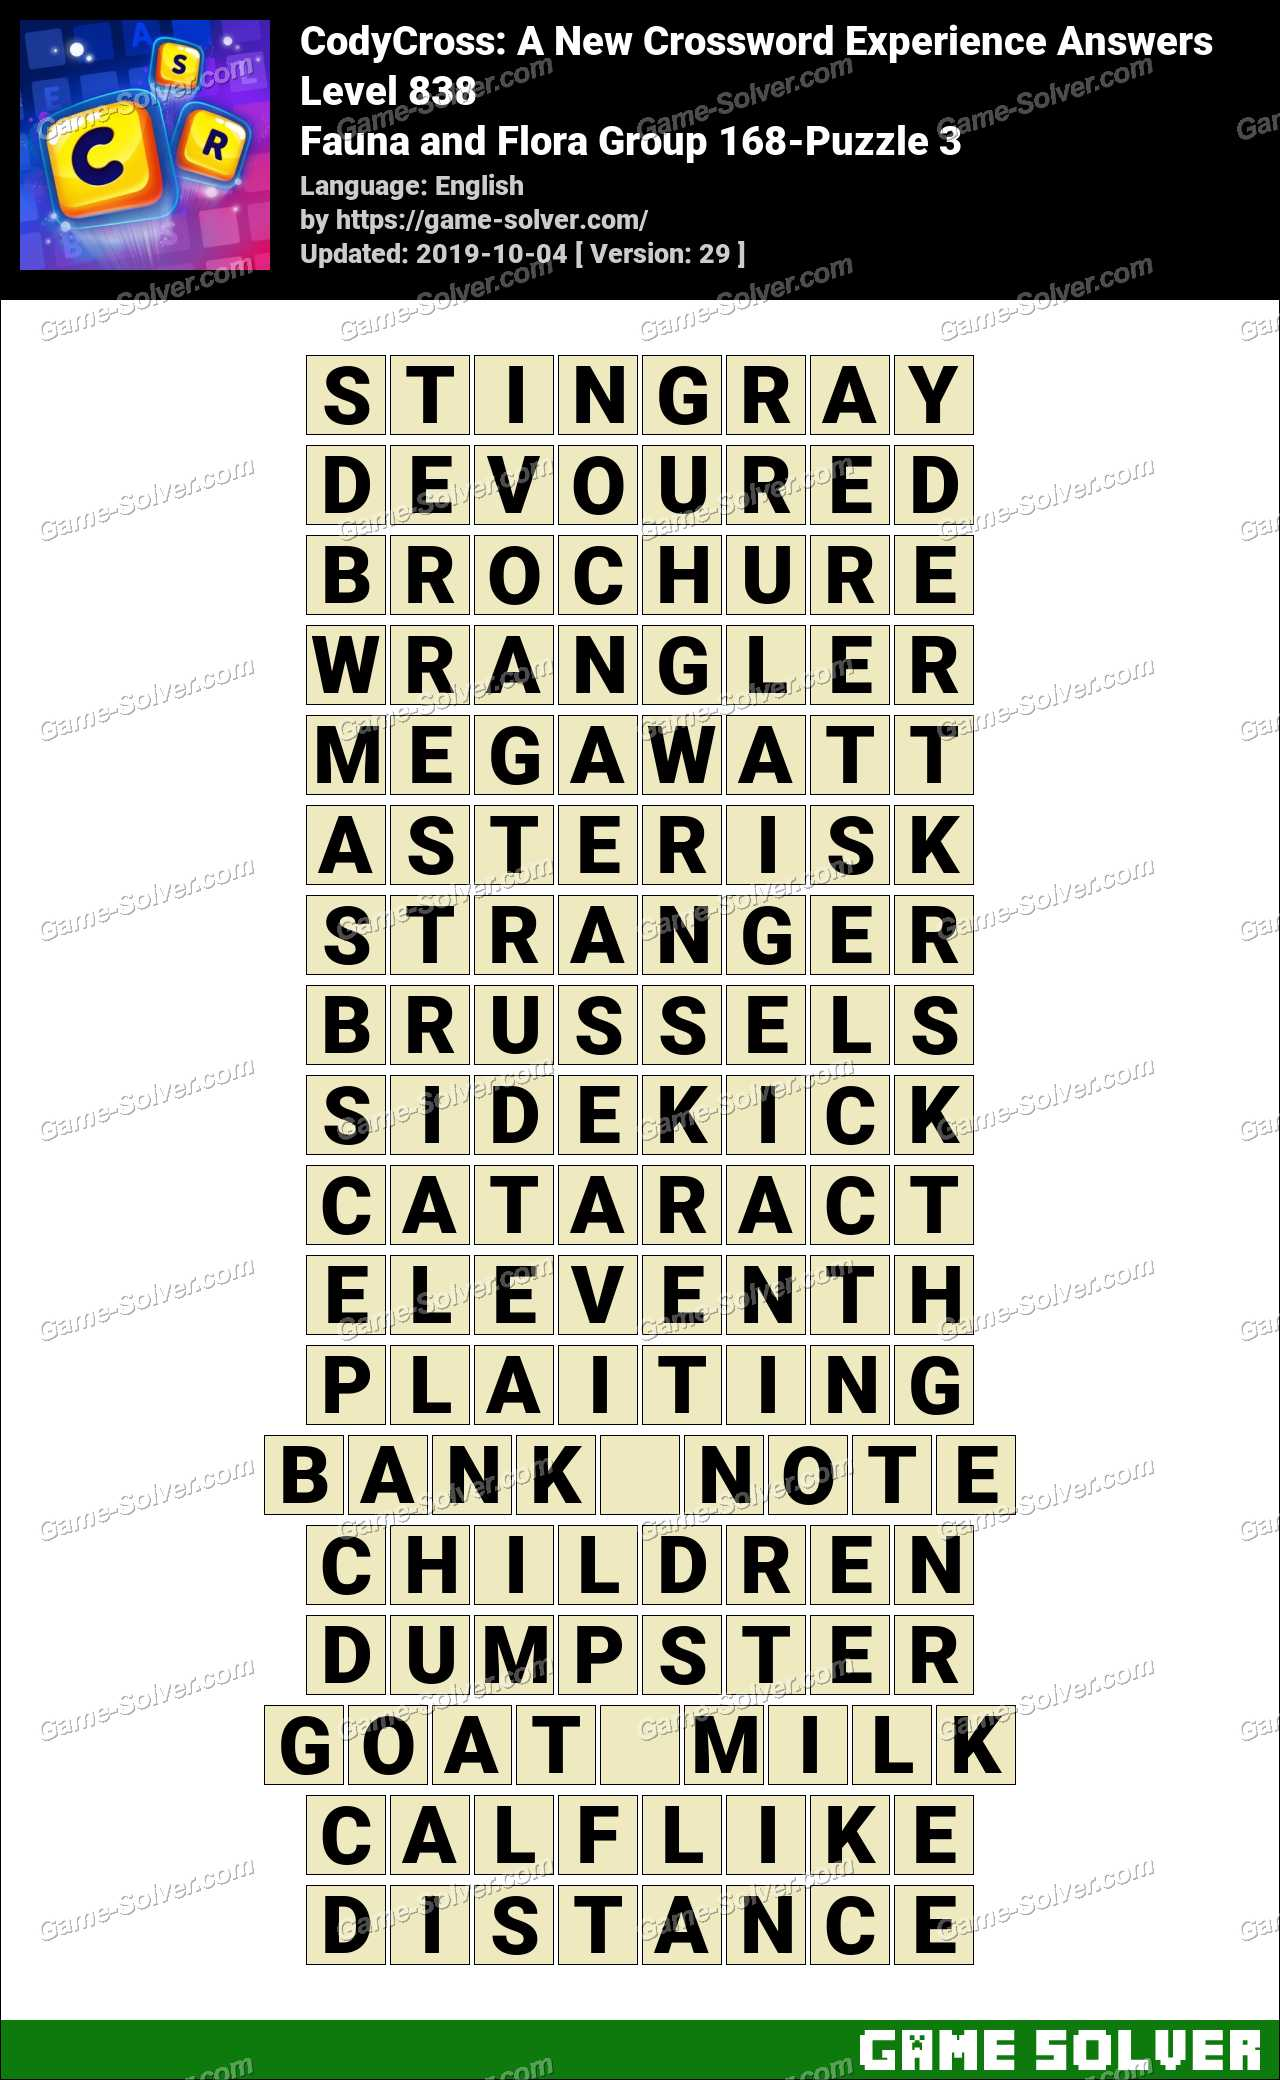 CodyCross Fauna and Flora Group 168-Puzzle 3 Answers